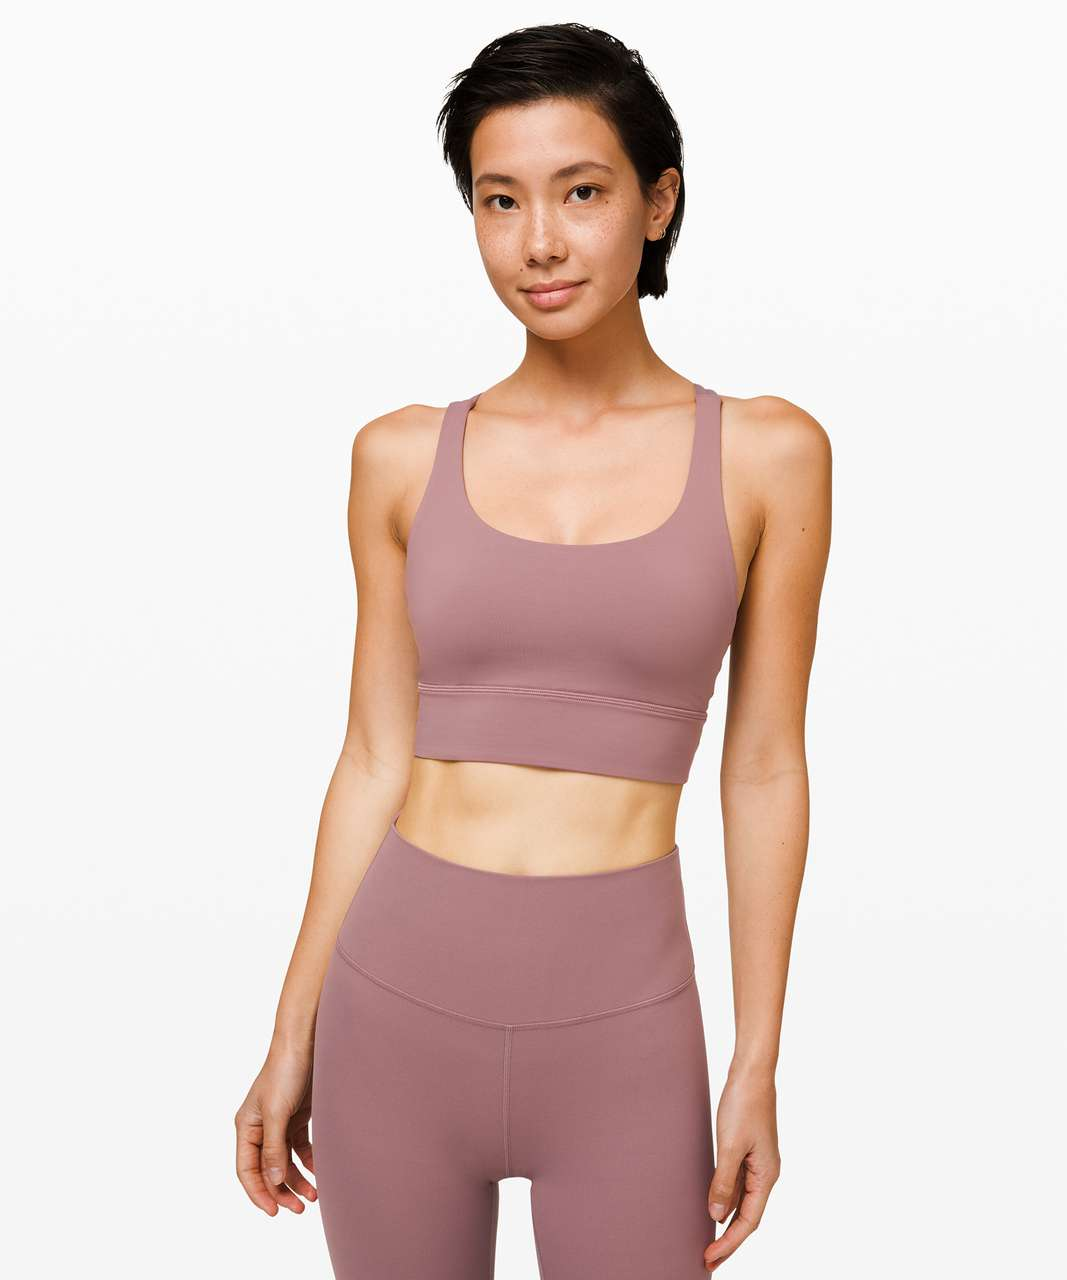 Lululemon Energy Bra Long Line *Lunar New Year - Misty Mocha